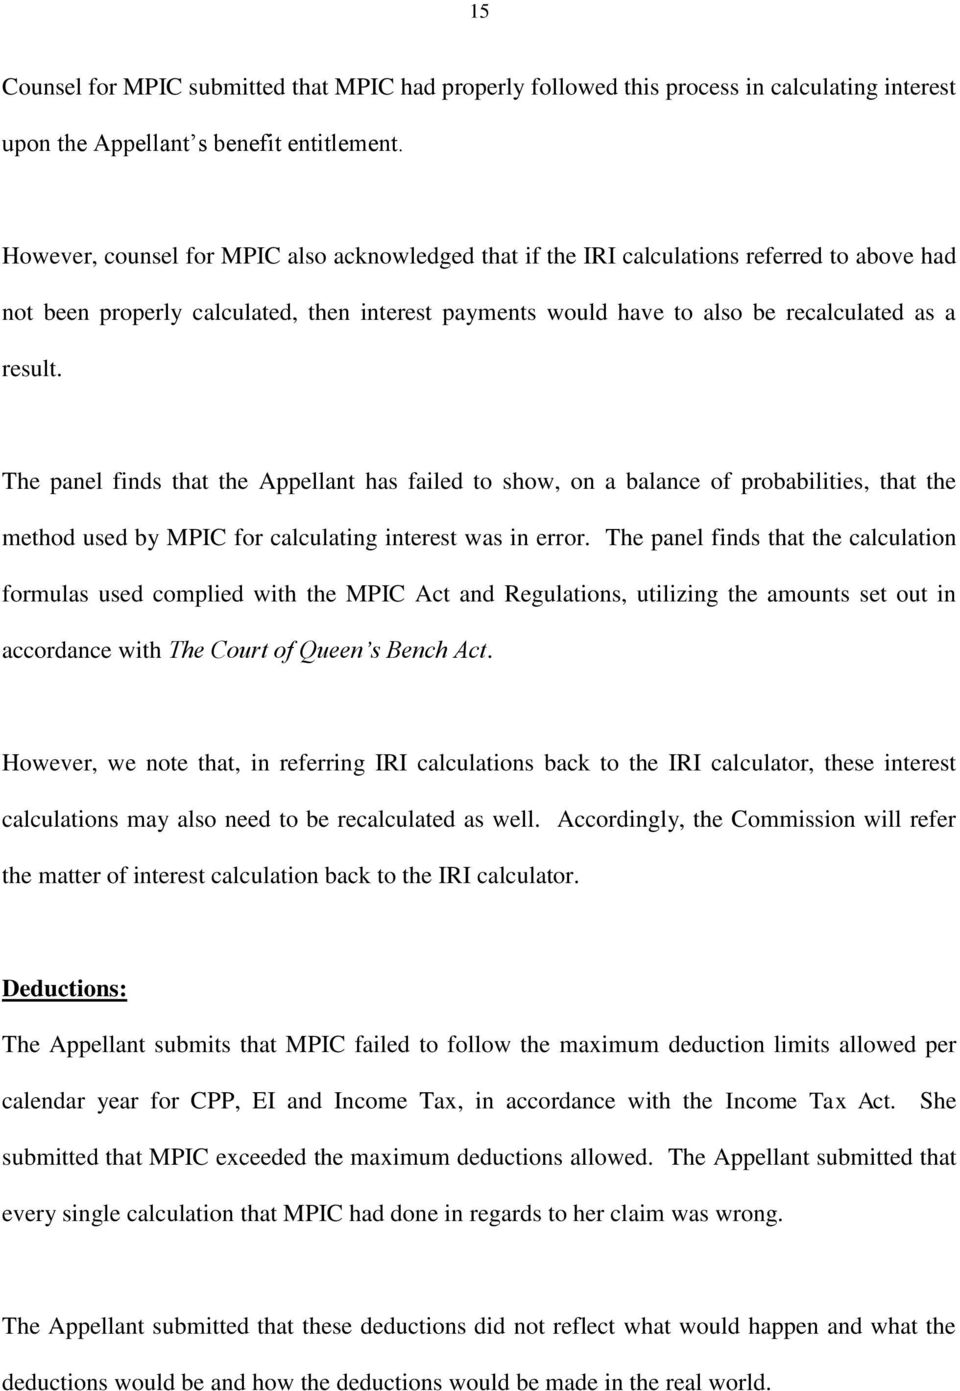 The panel finds that the Appellant has failed to show, on a balance of probabilities, that the method used by MPIC for calculating interest was in error.